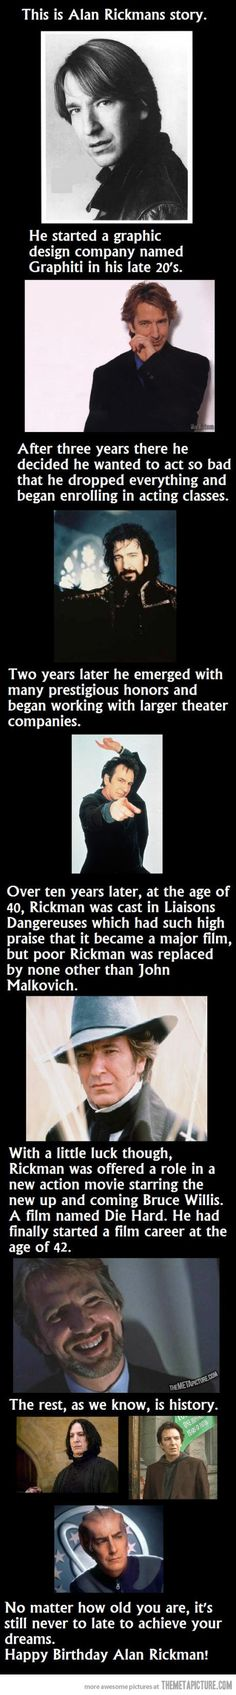 Happy Birthday Alan Rickman. And thanks for carrying the torch.NEVER too late!